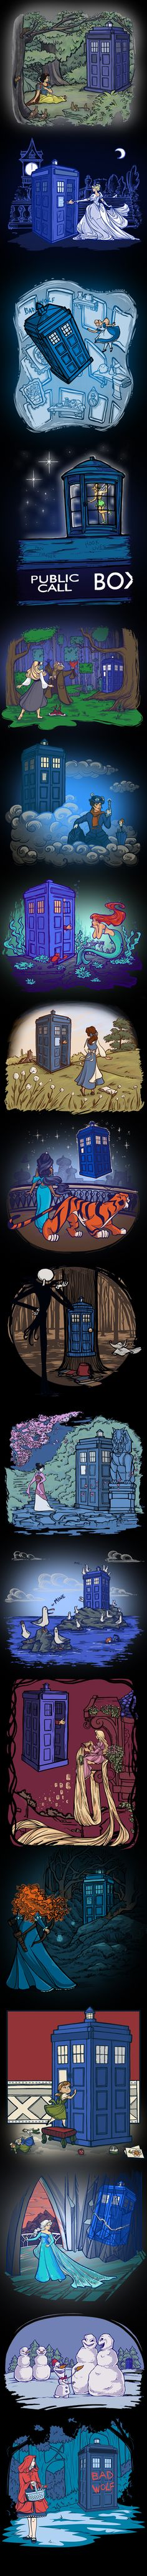 Karen Hallion Disney Doctor Who mashups. These are cool. And, you know, Mary Poppins does have a bag that's bigger on the inside...